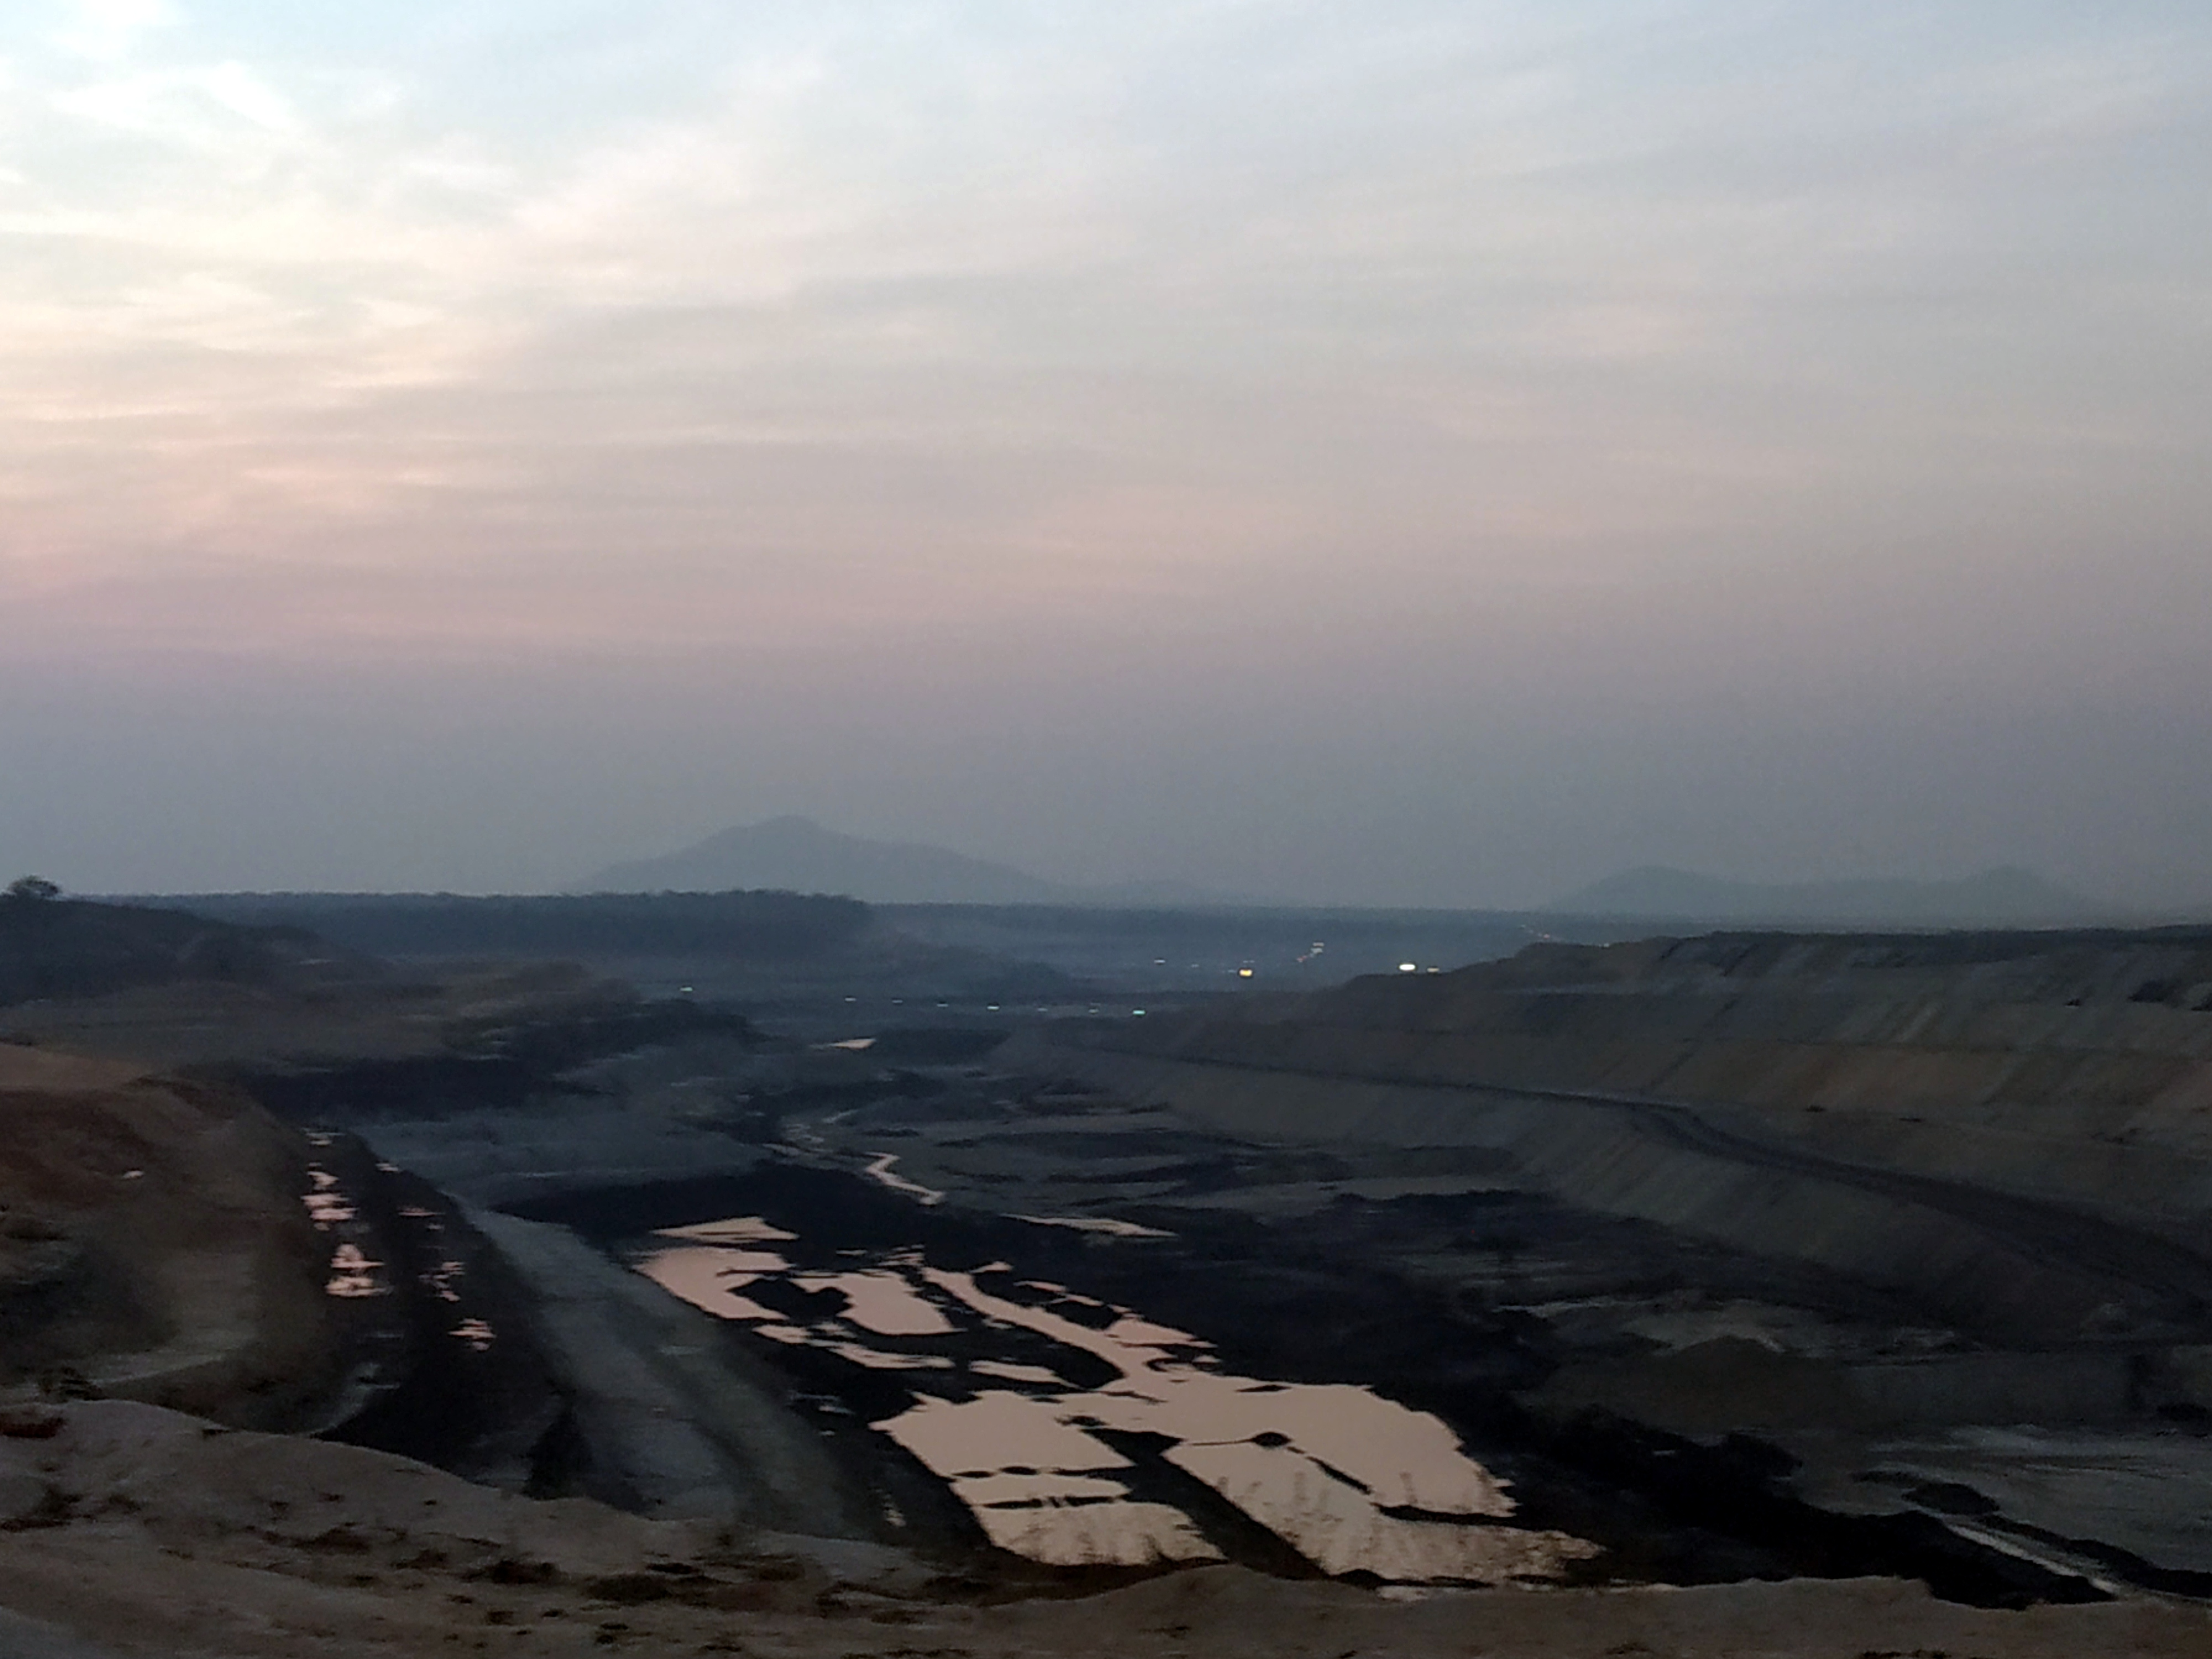 The PEKB coal mine, developed and operated by Adani in the Hasdeo forests.